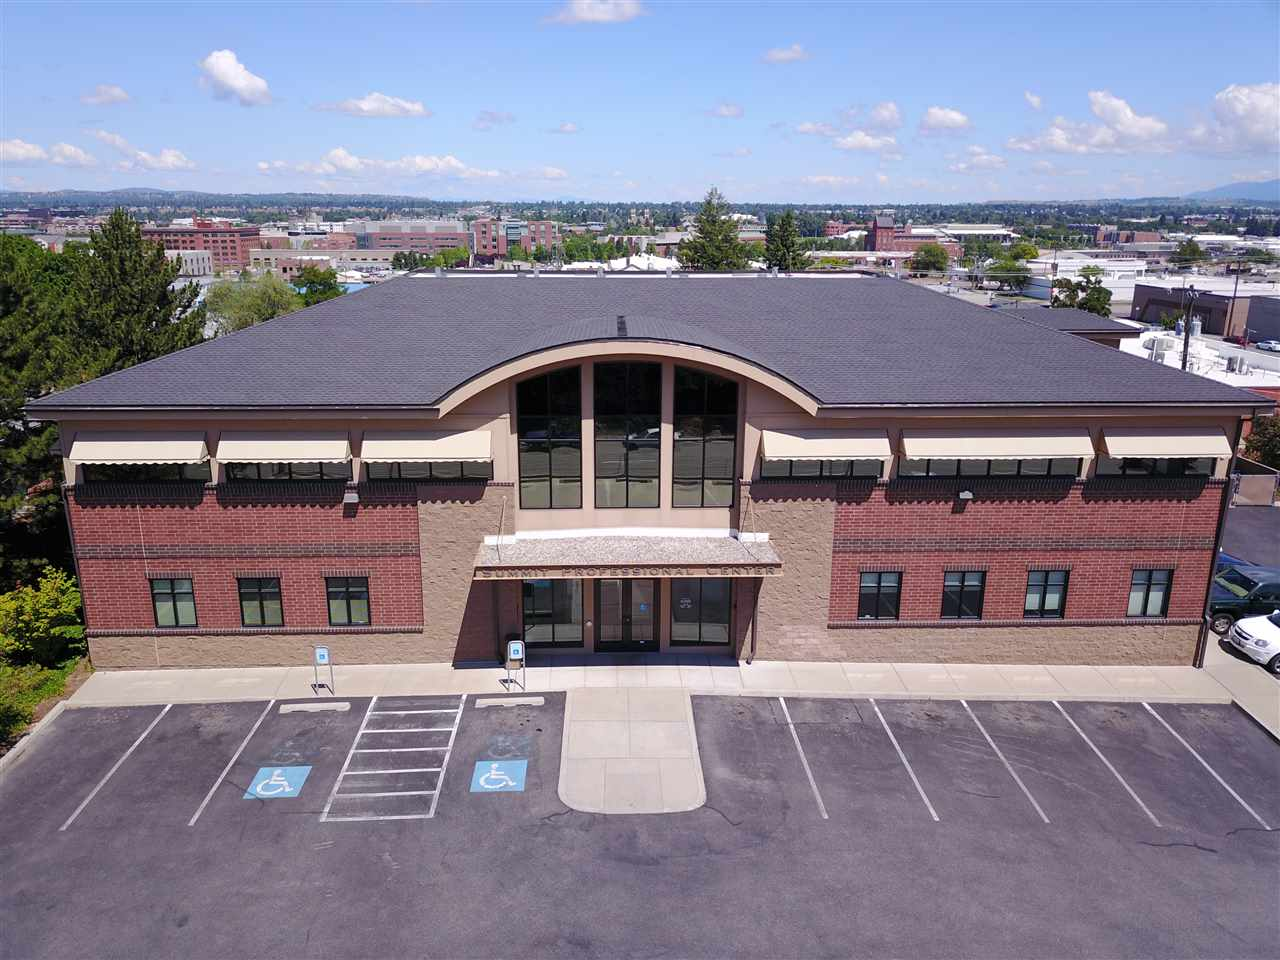 Ideal opportunity for owner/occupant entire 2nd floor.  Quality constructed brick 2 story Class B+ Medical office building.  Elevator.  Ample parking. Main floor fully occupied with long term NNN lease.  Second floor available for lease and/or owner occupant.   7.7 Cap.  EZ I-90 access.  Daily Traffic count 11,500